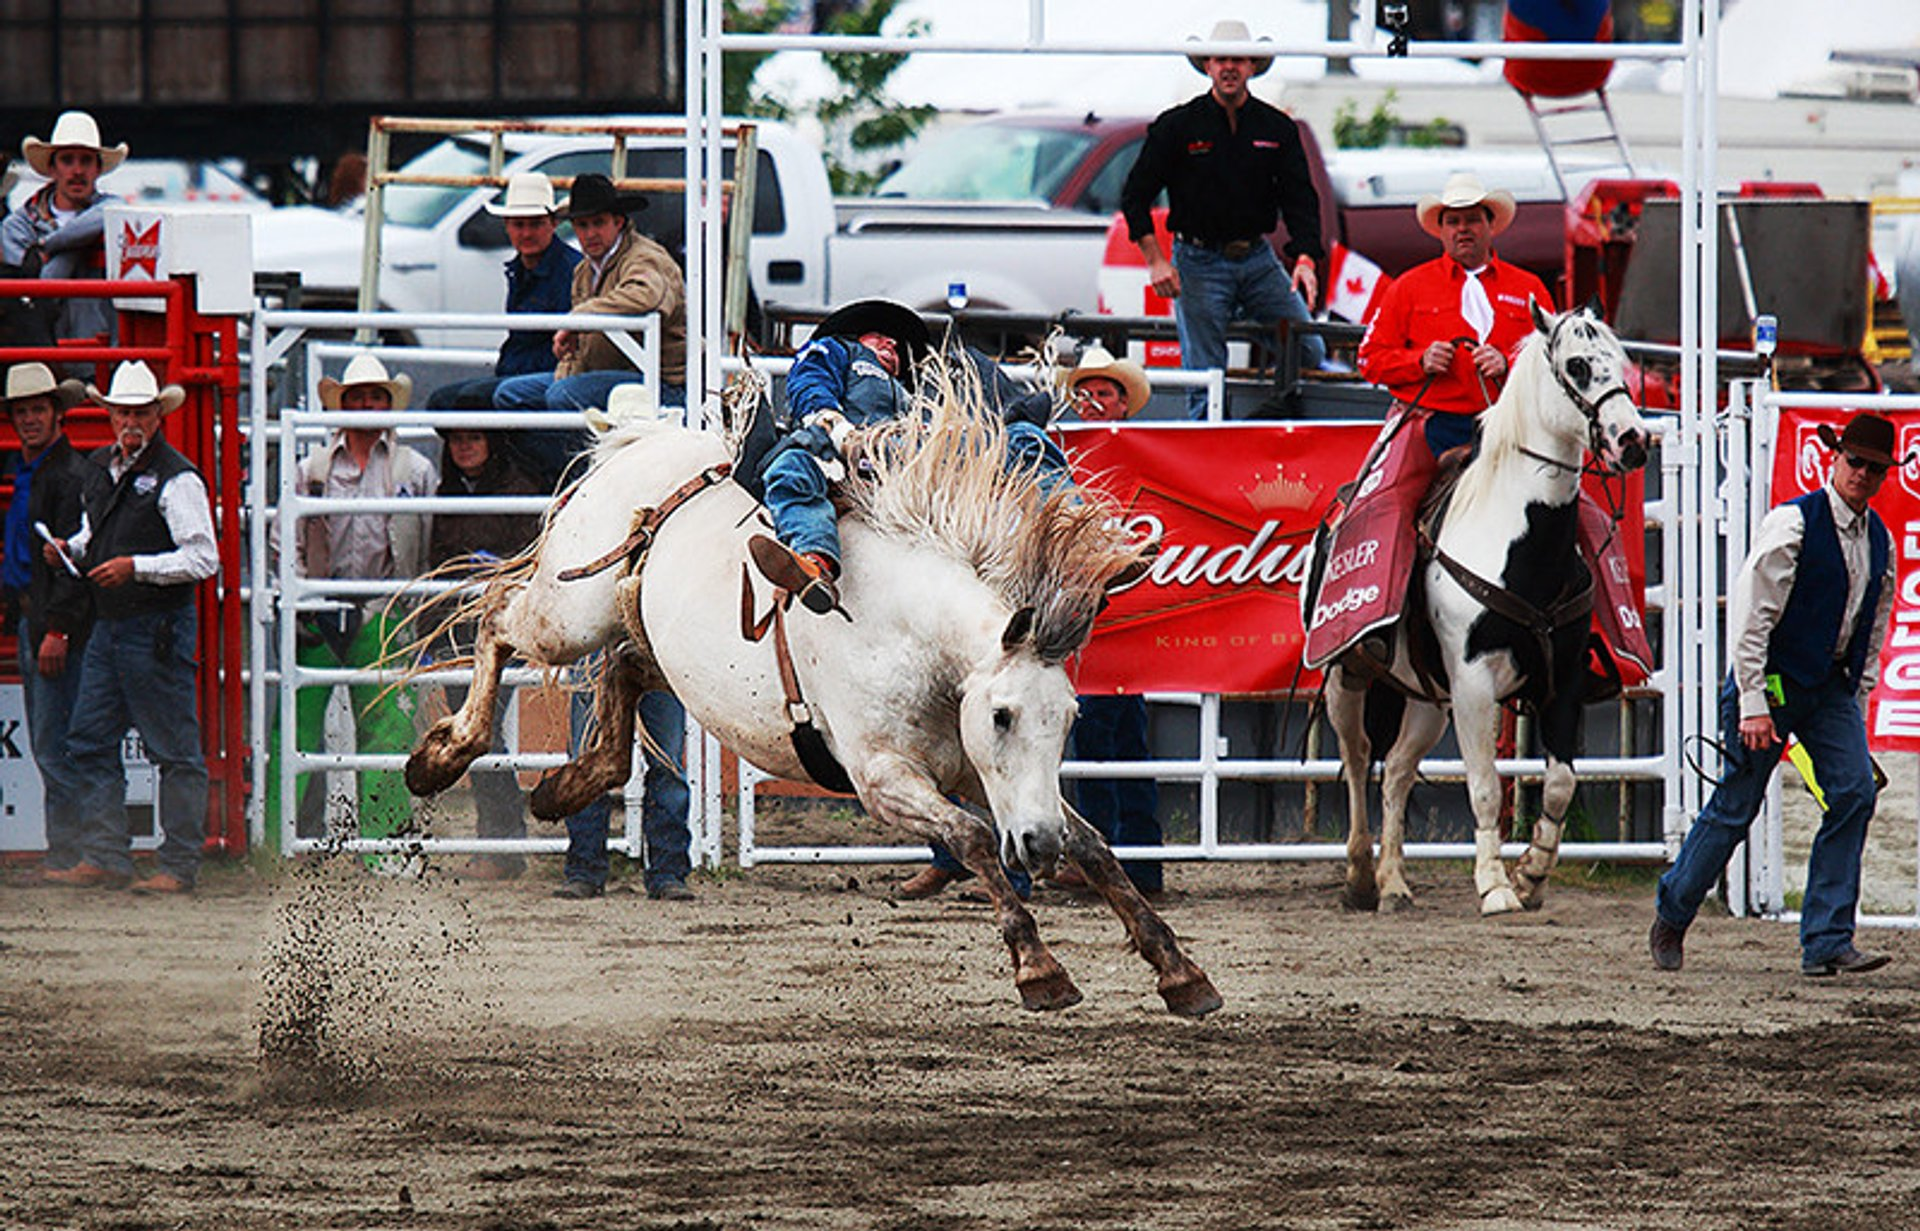 Cloverdale Rodeo and Country Fair in Vancouver 2020 - Best Time